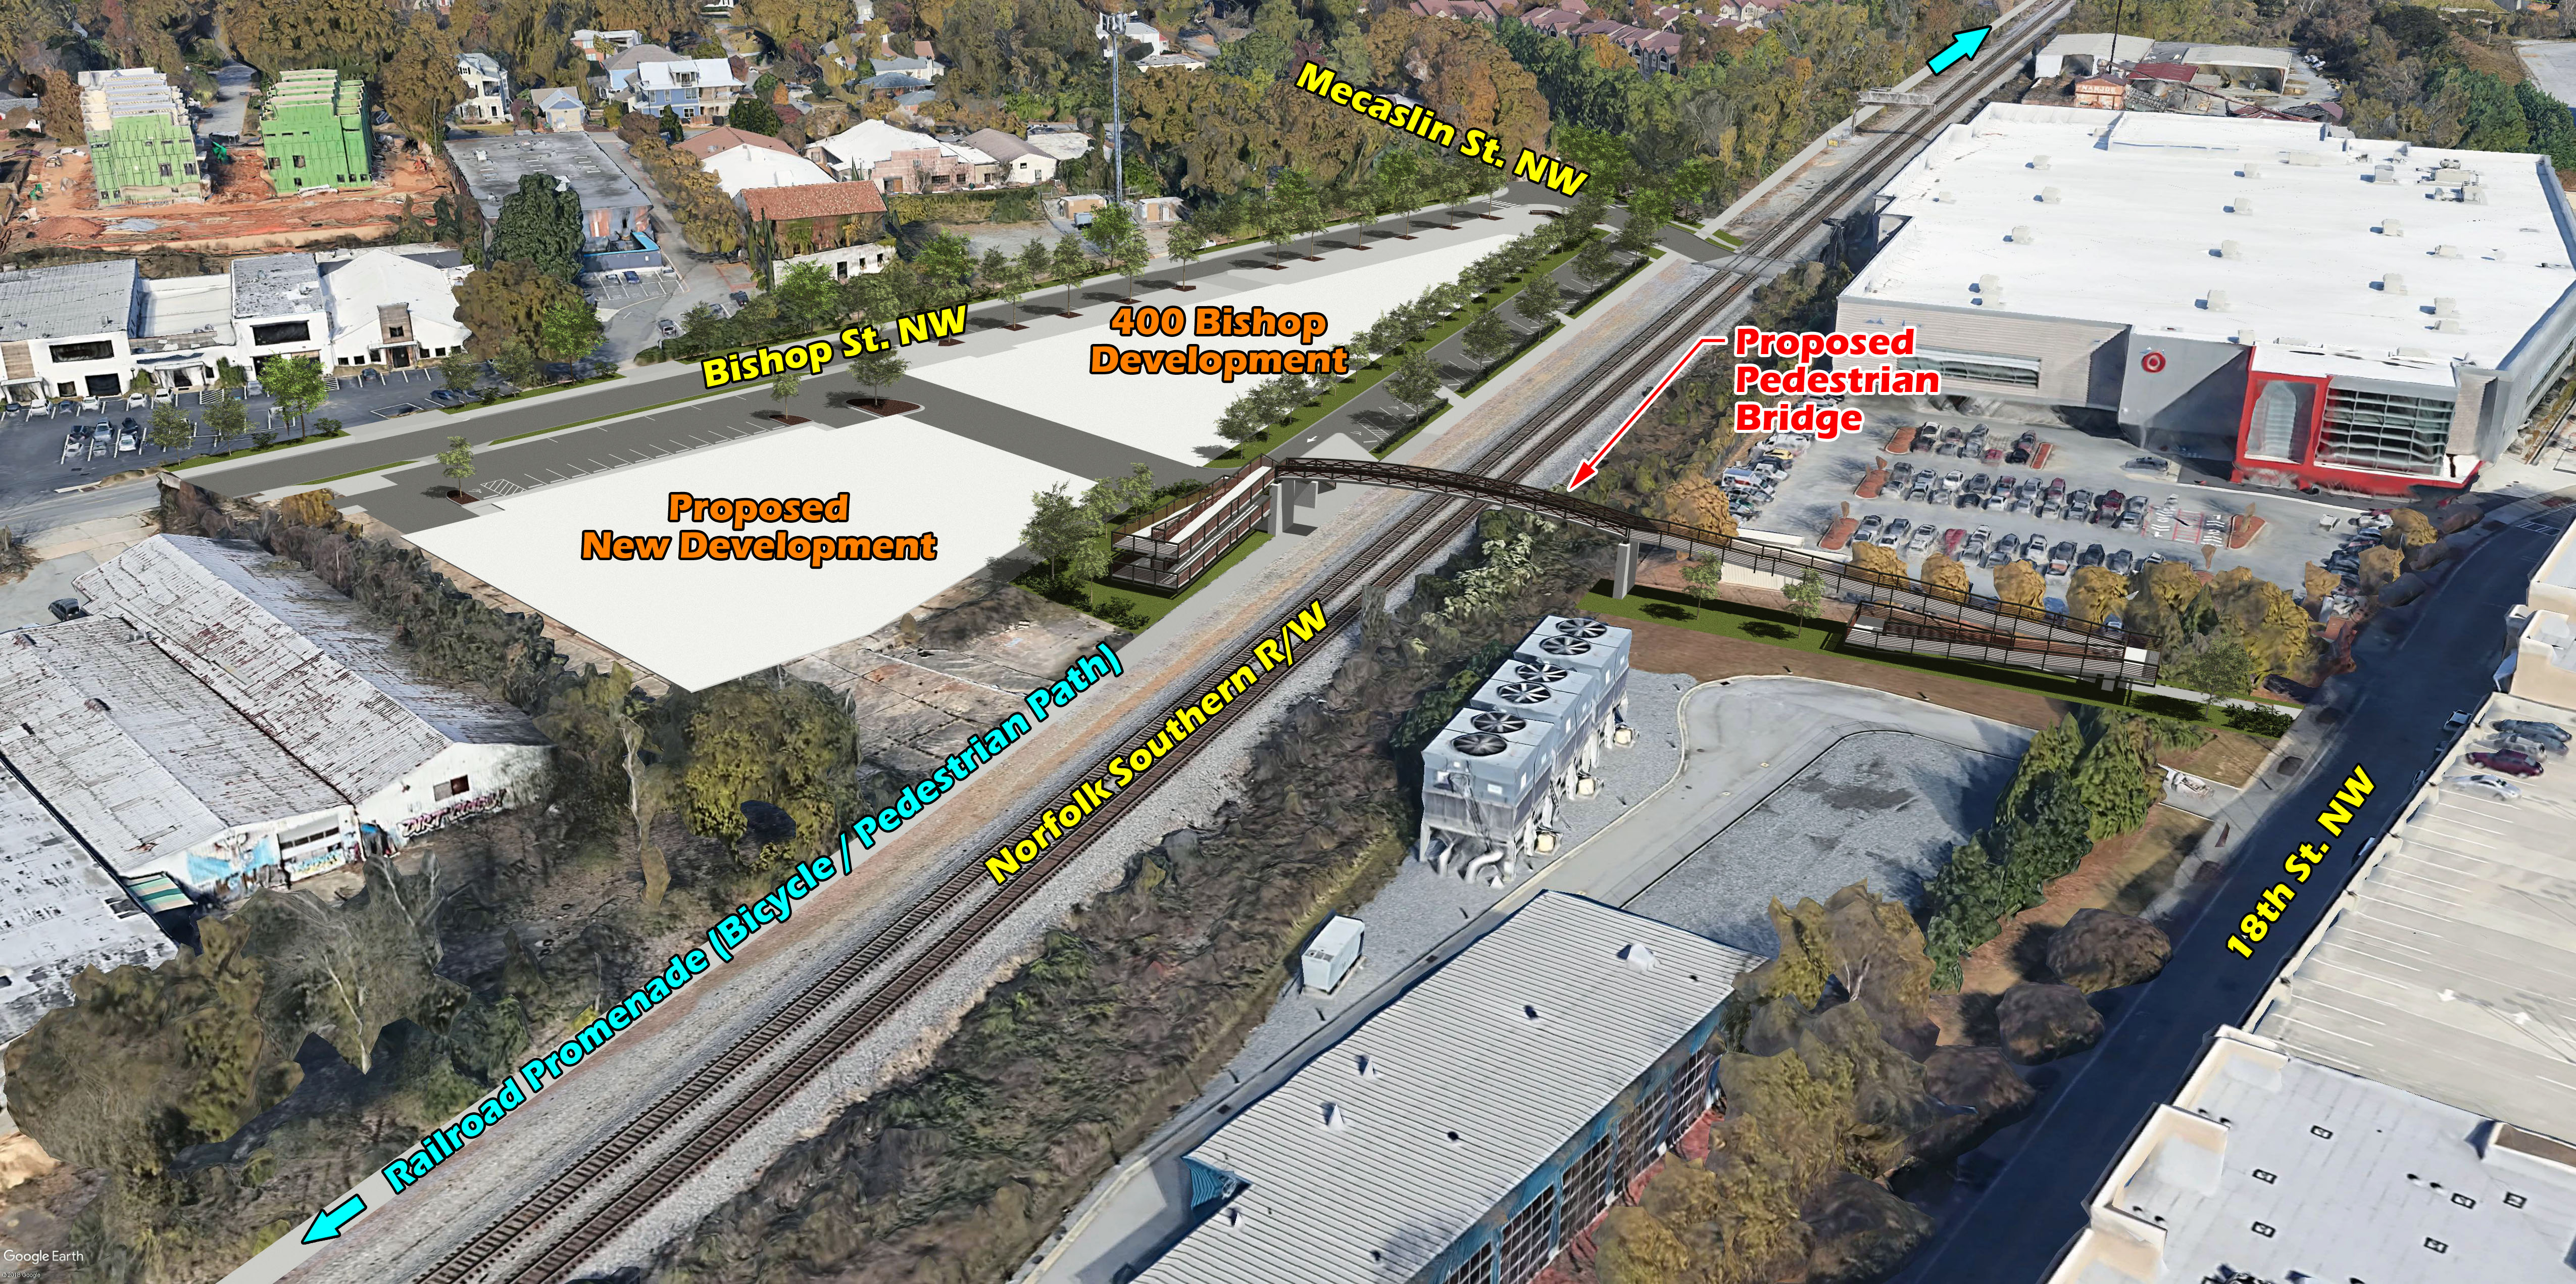 A rendering of the bridge arched over the railroad tracks, superimposed on a 3D map of the area.